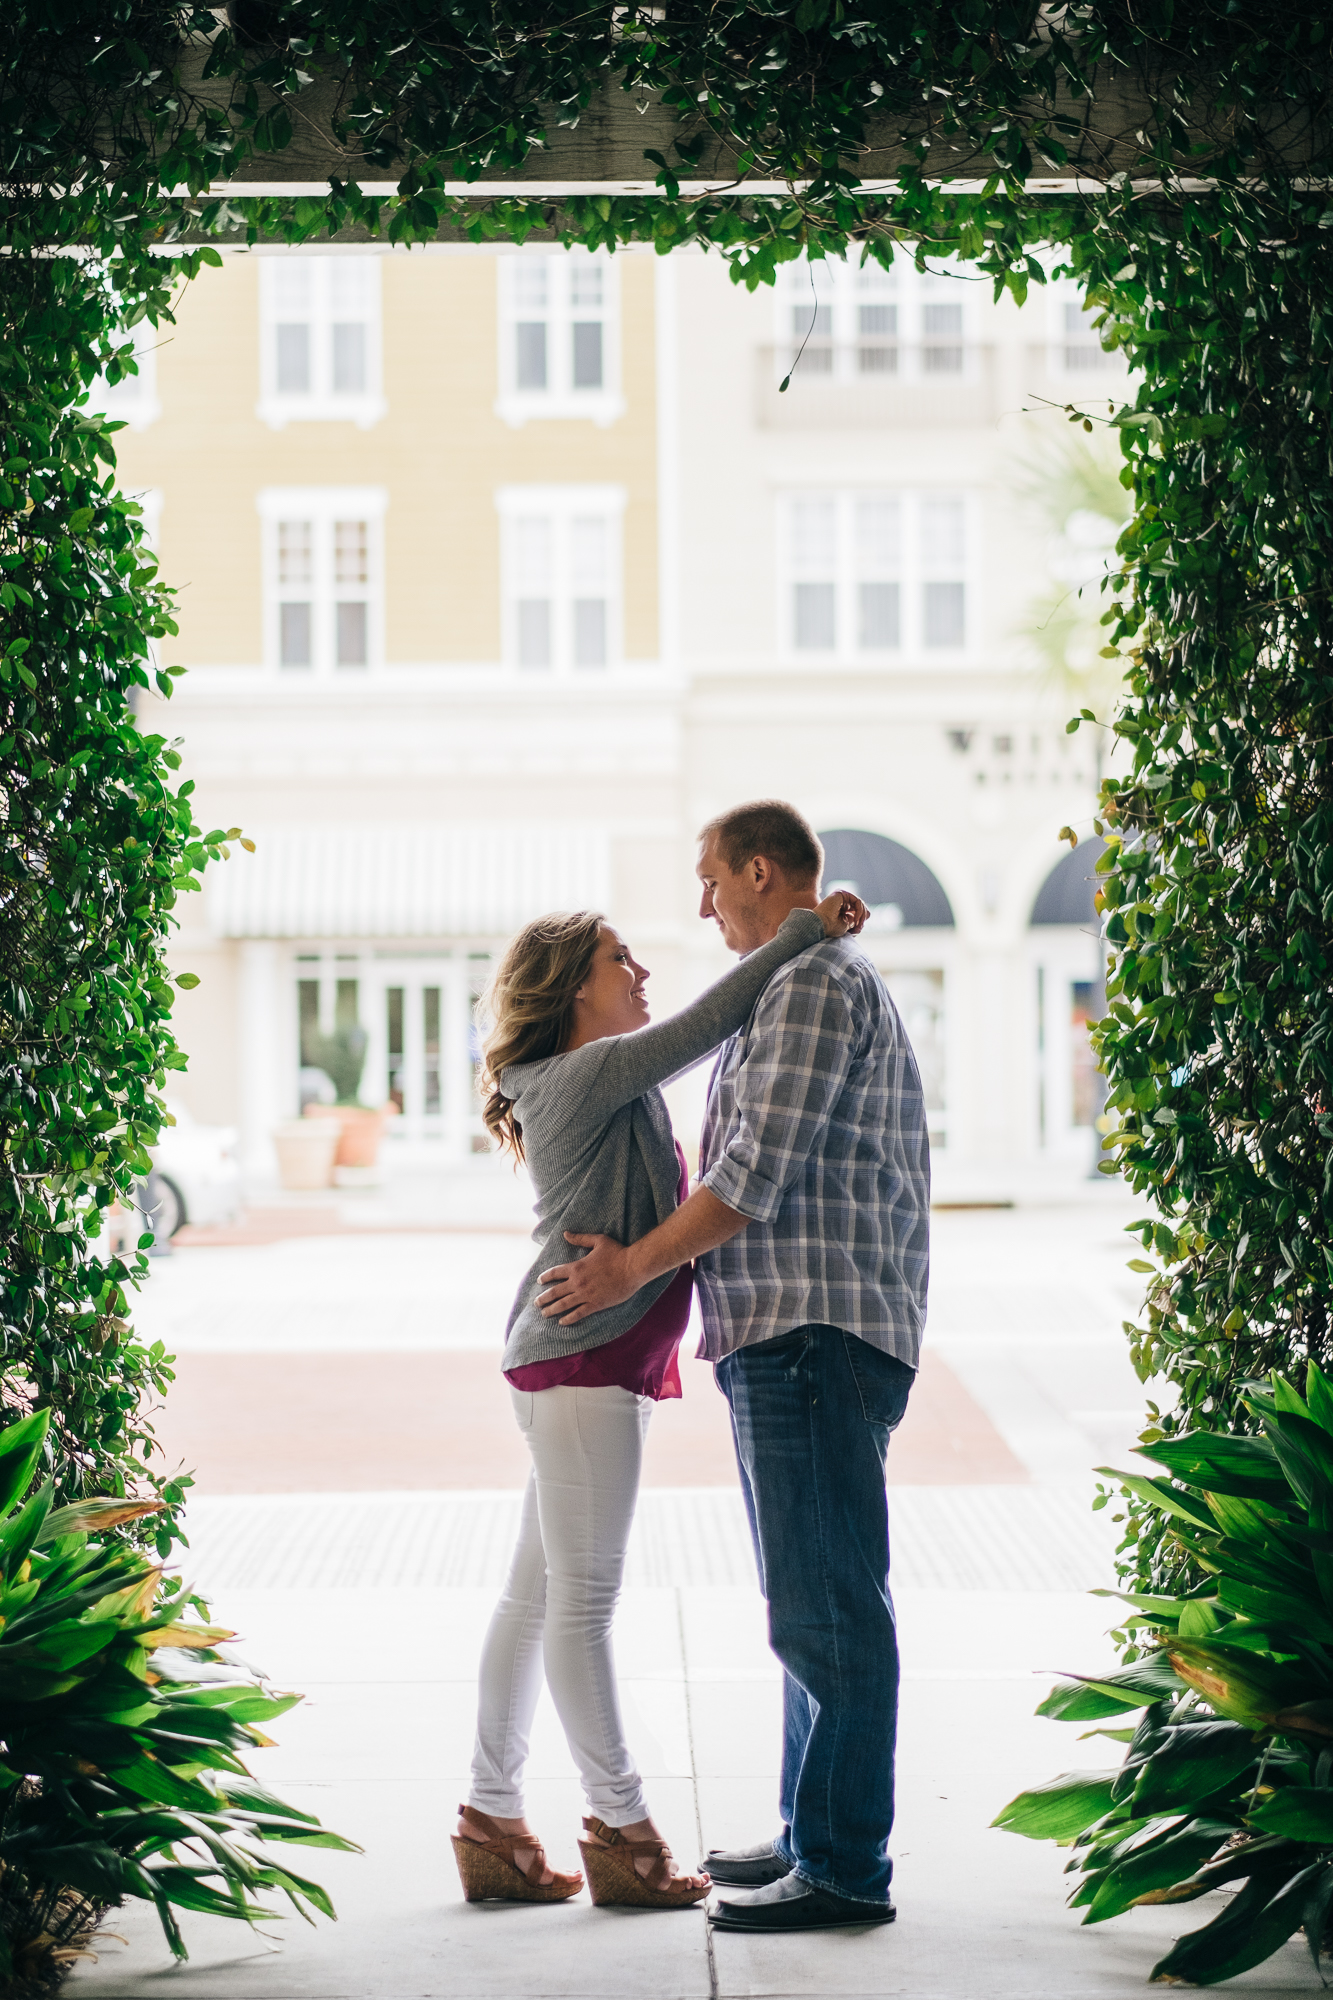 Market Common - Myrtle Beach Engagement Portrait Session  Affordable Wedding Photographer  Jarrett Hucks Photography